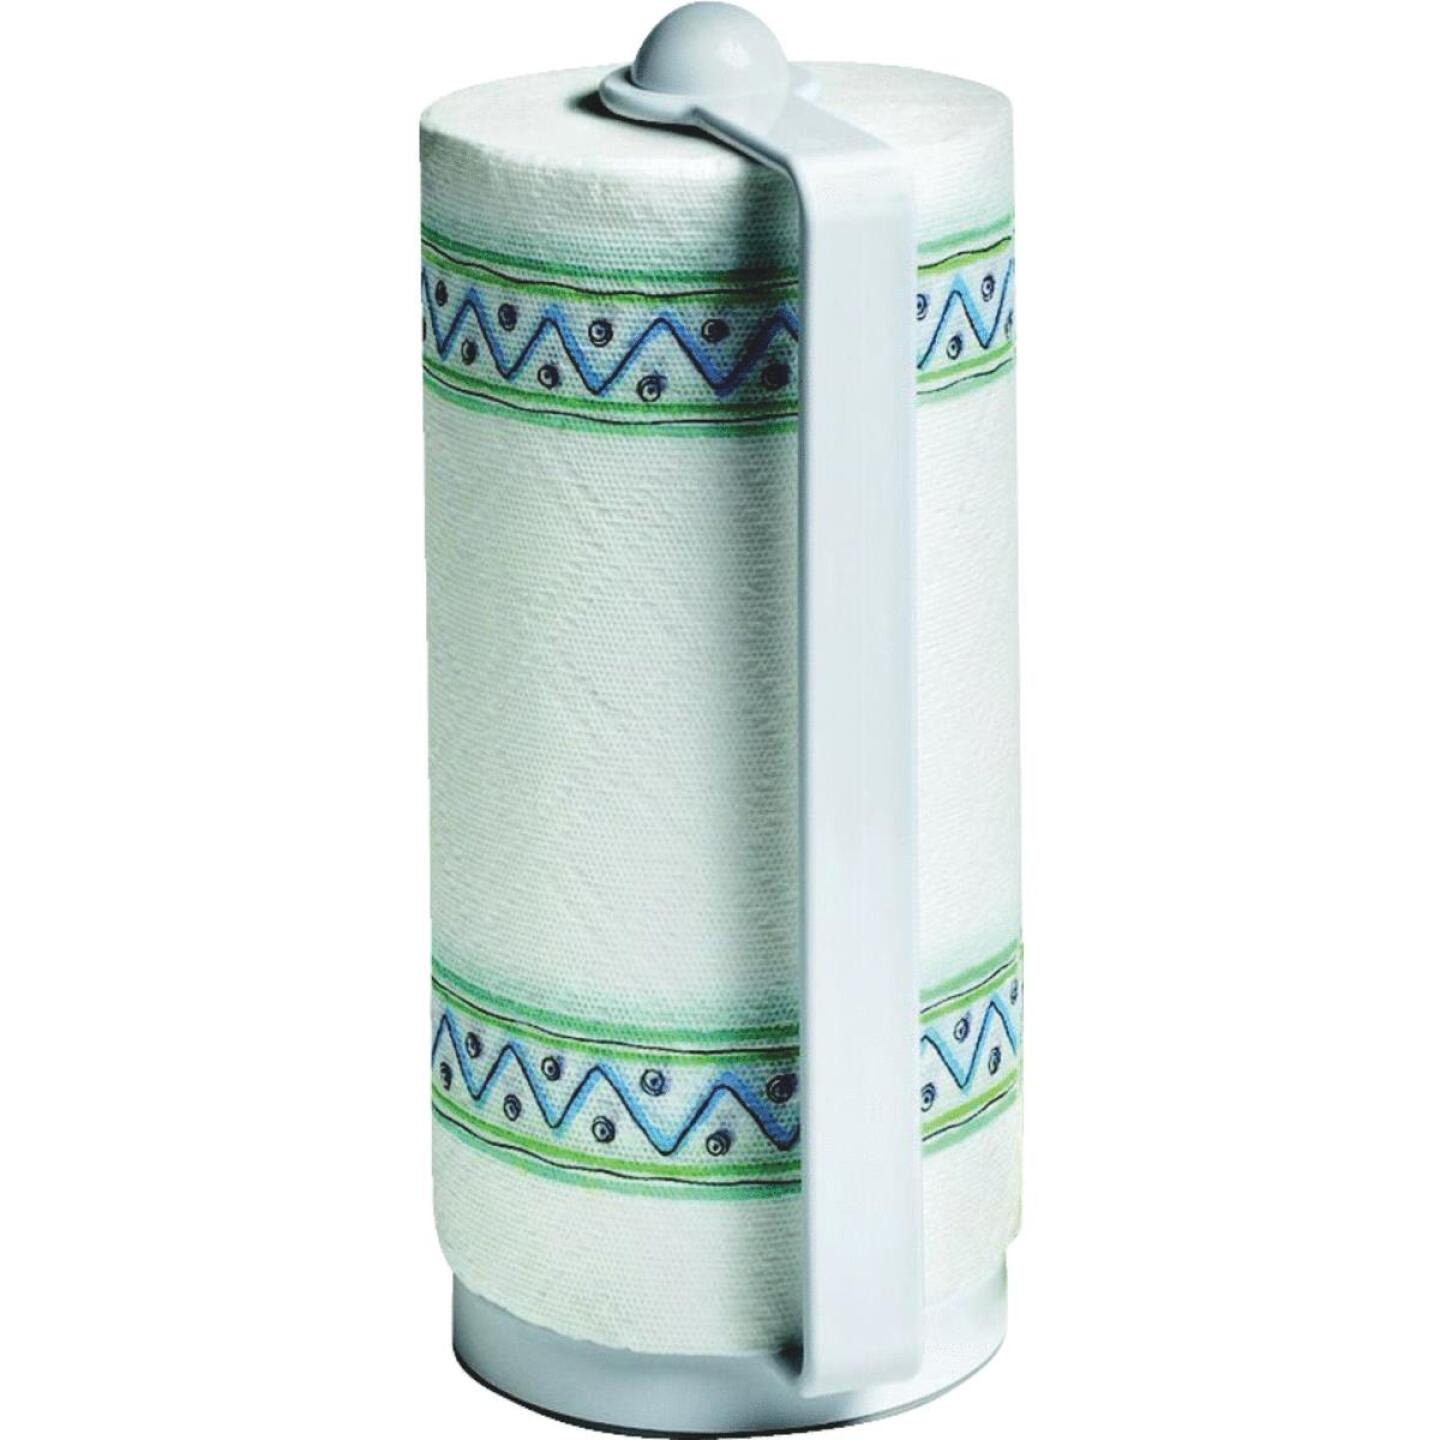 Spectrum White Portable Plastic Paper Towel Holder Image 1